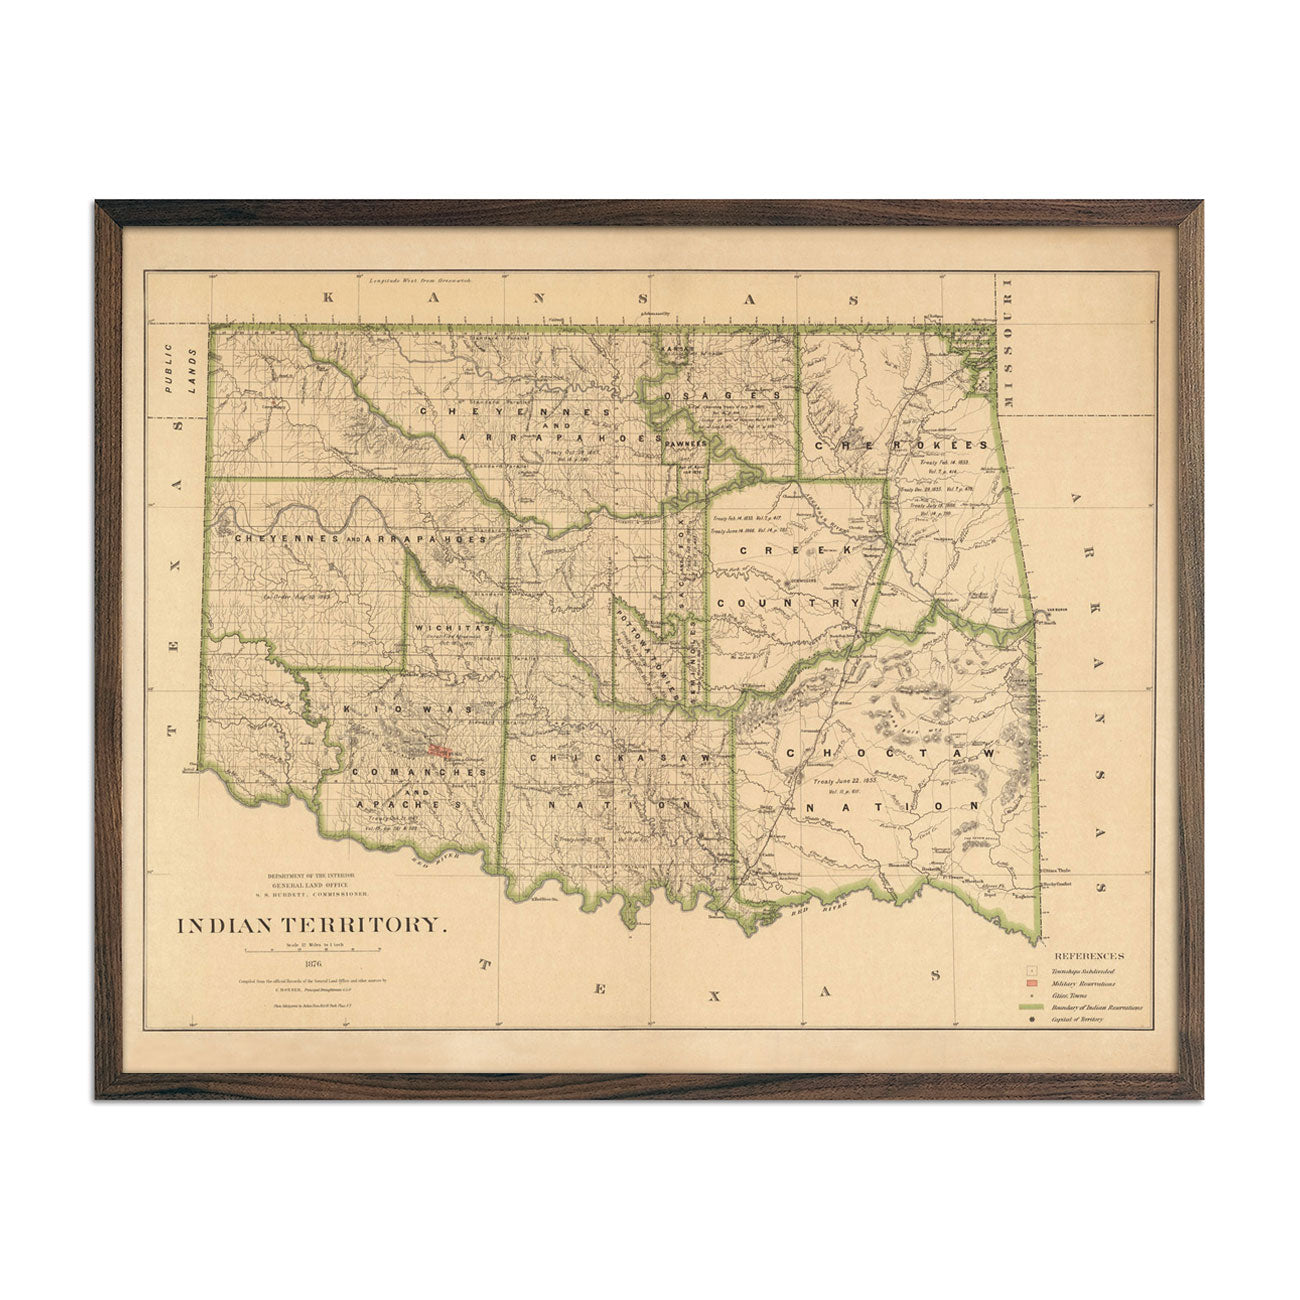 Map of Indian Territory (Oklahoma) 1876